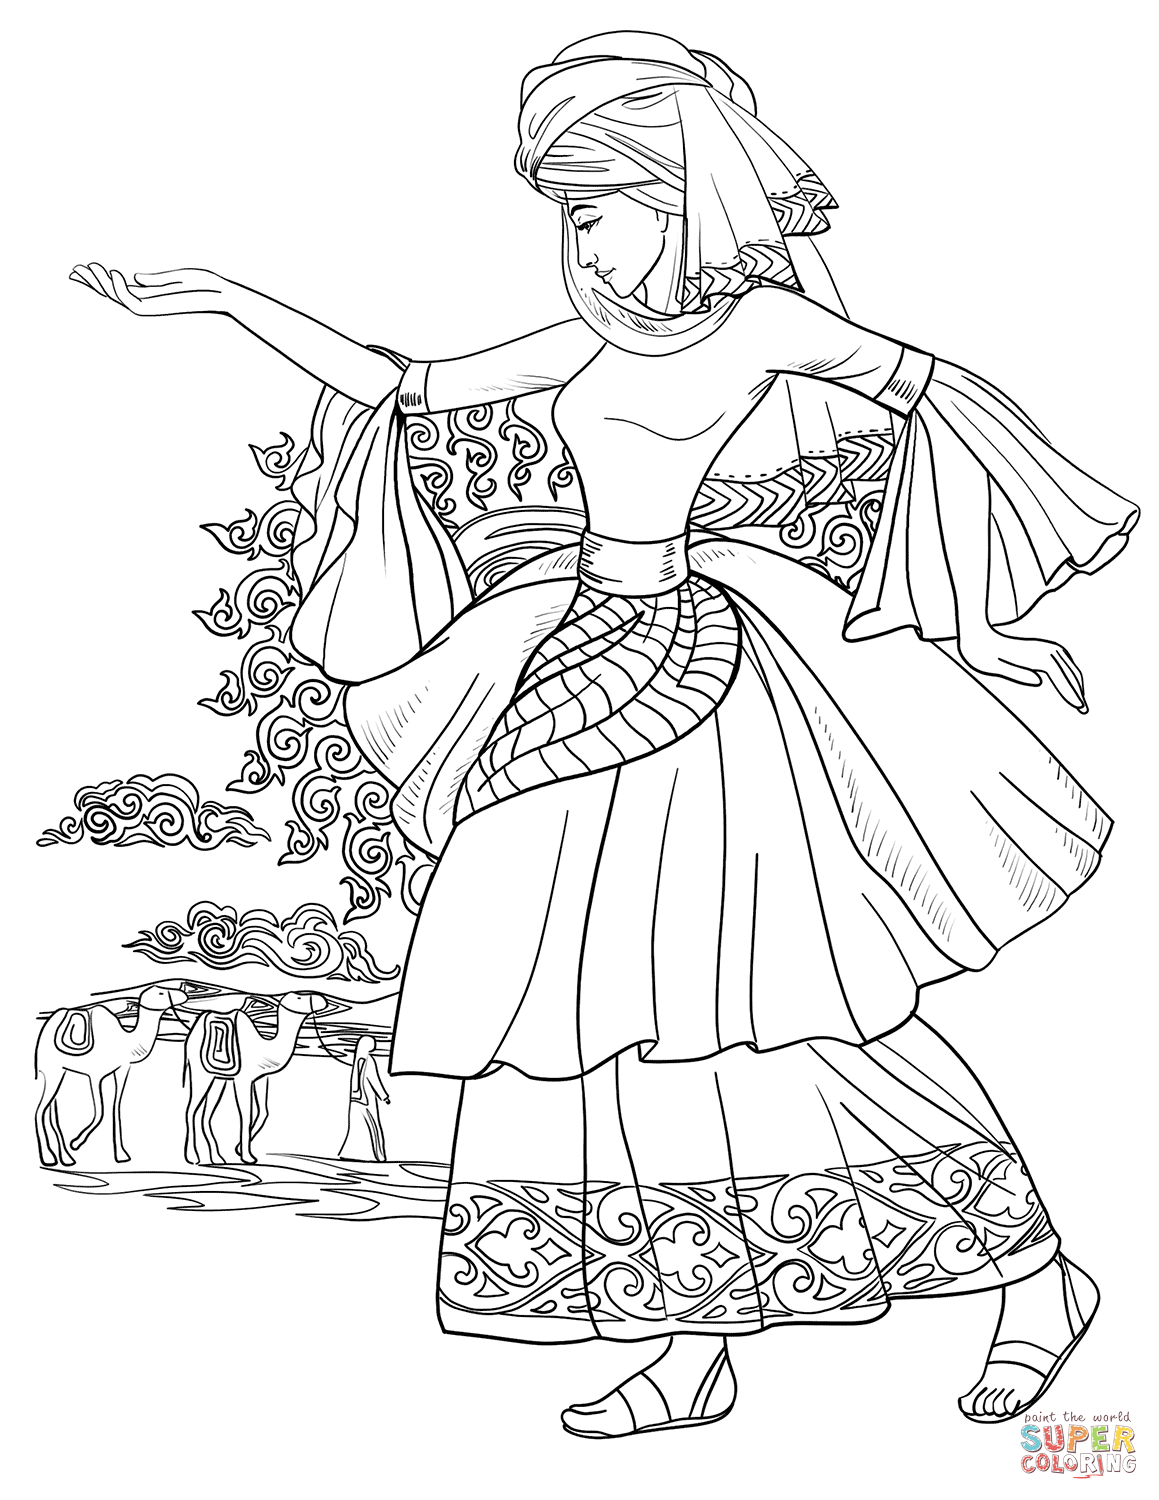 Arab Woman Dancing Coloring Page